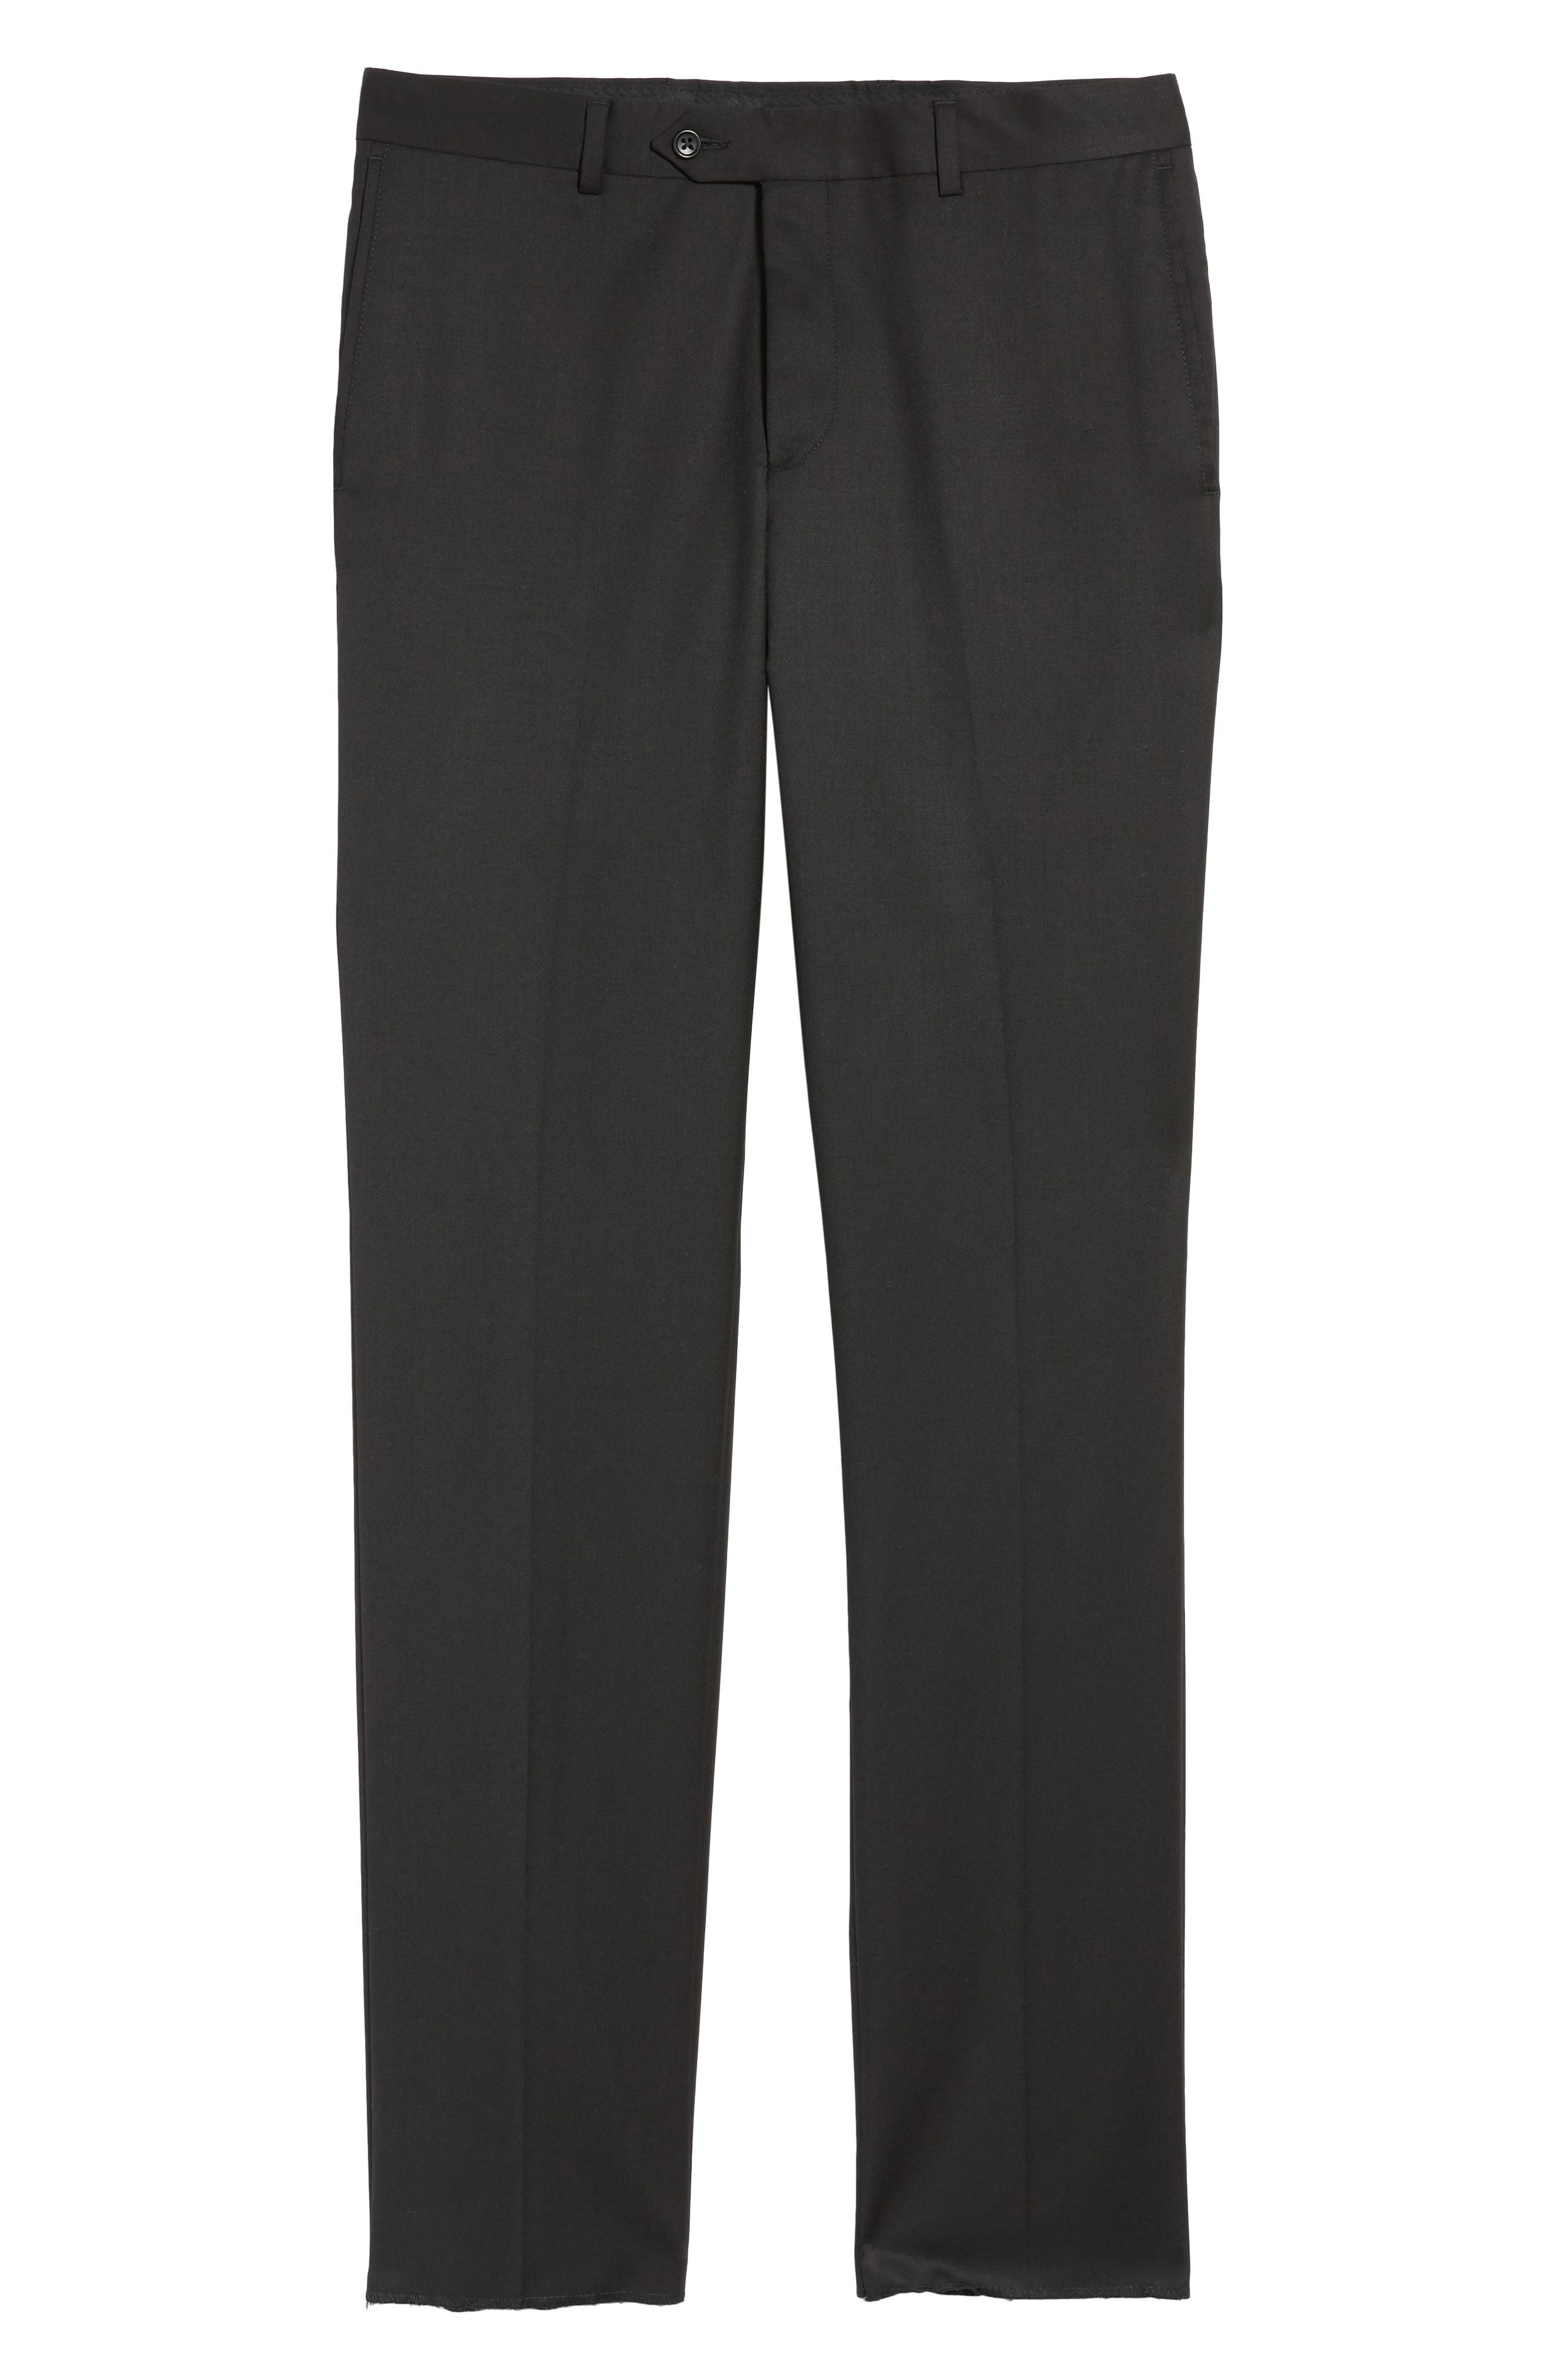 Flat Front Wool Trousers,                             Alternate thumbnail 2, color,                             001